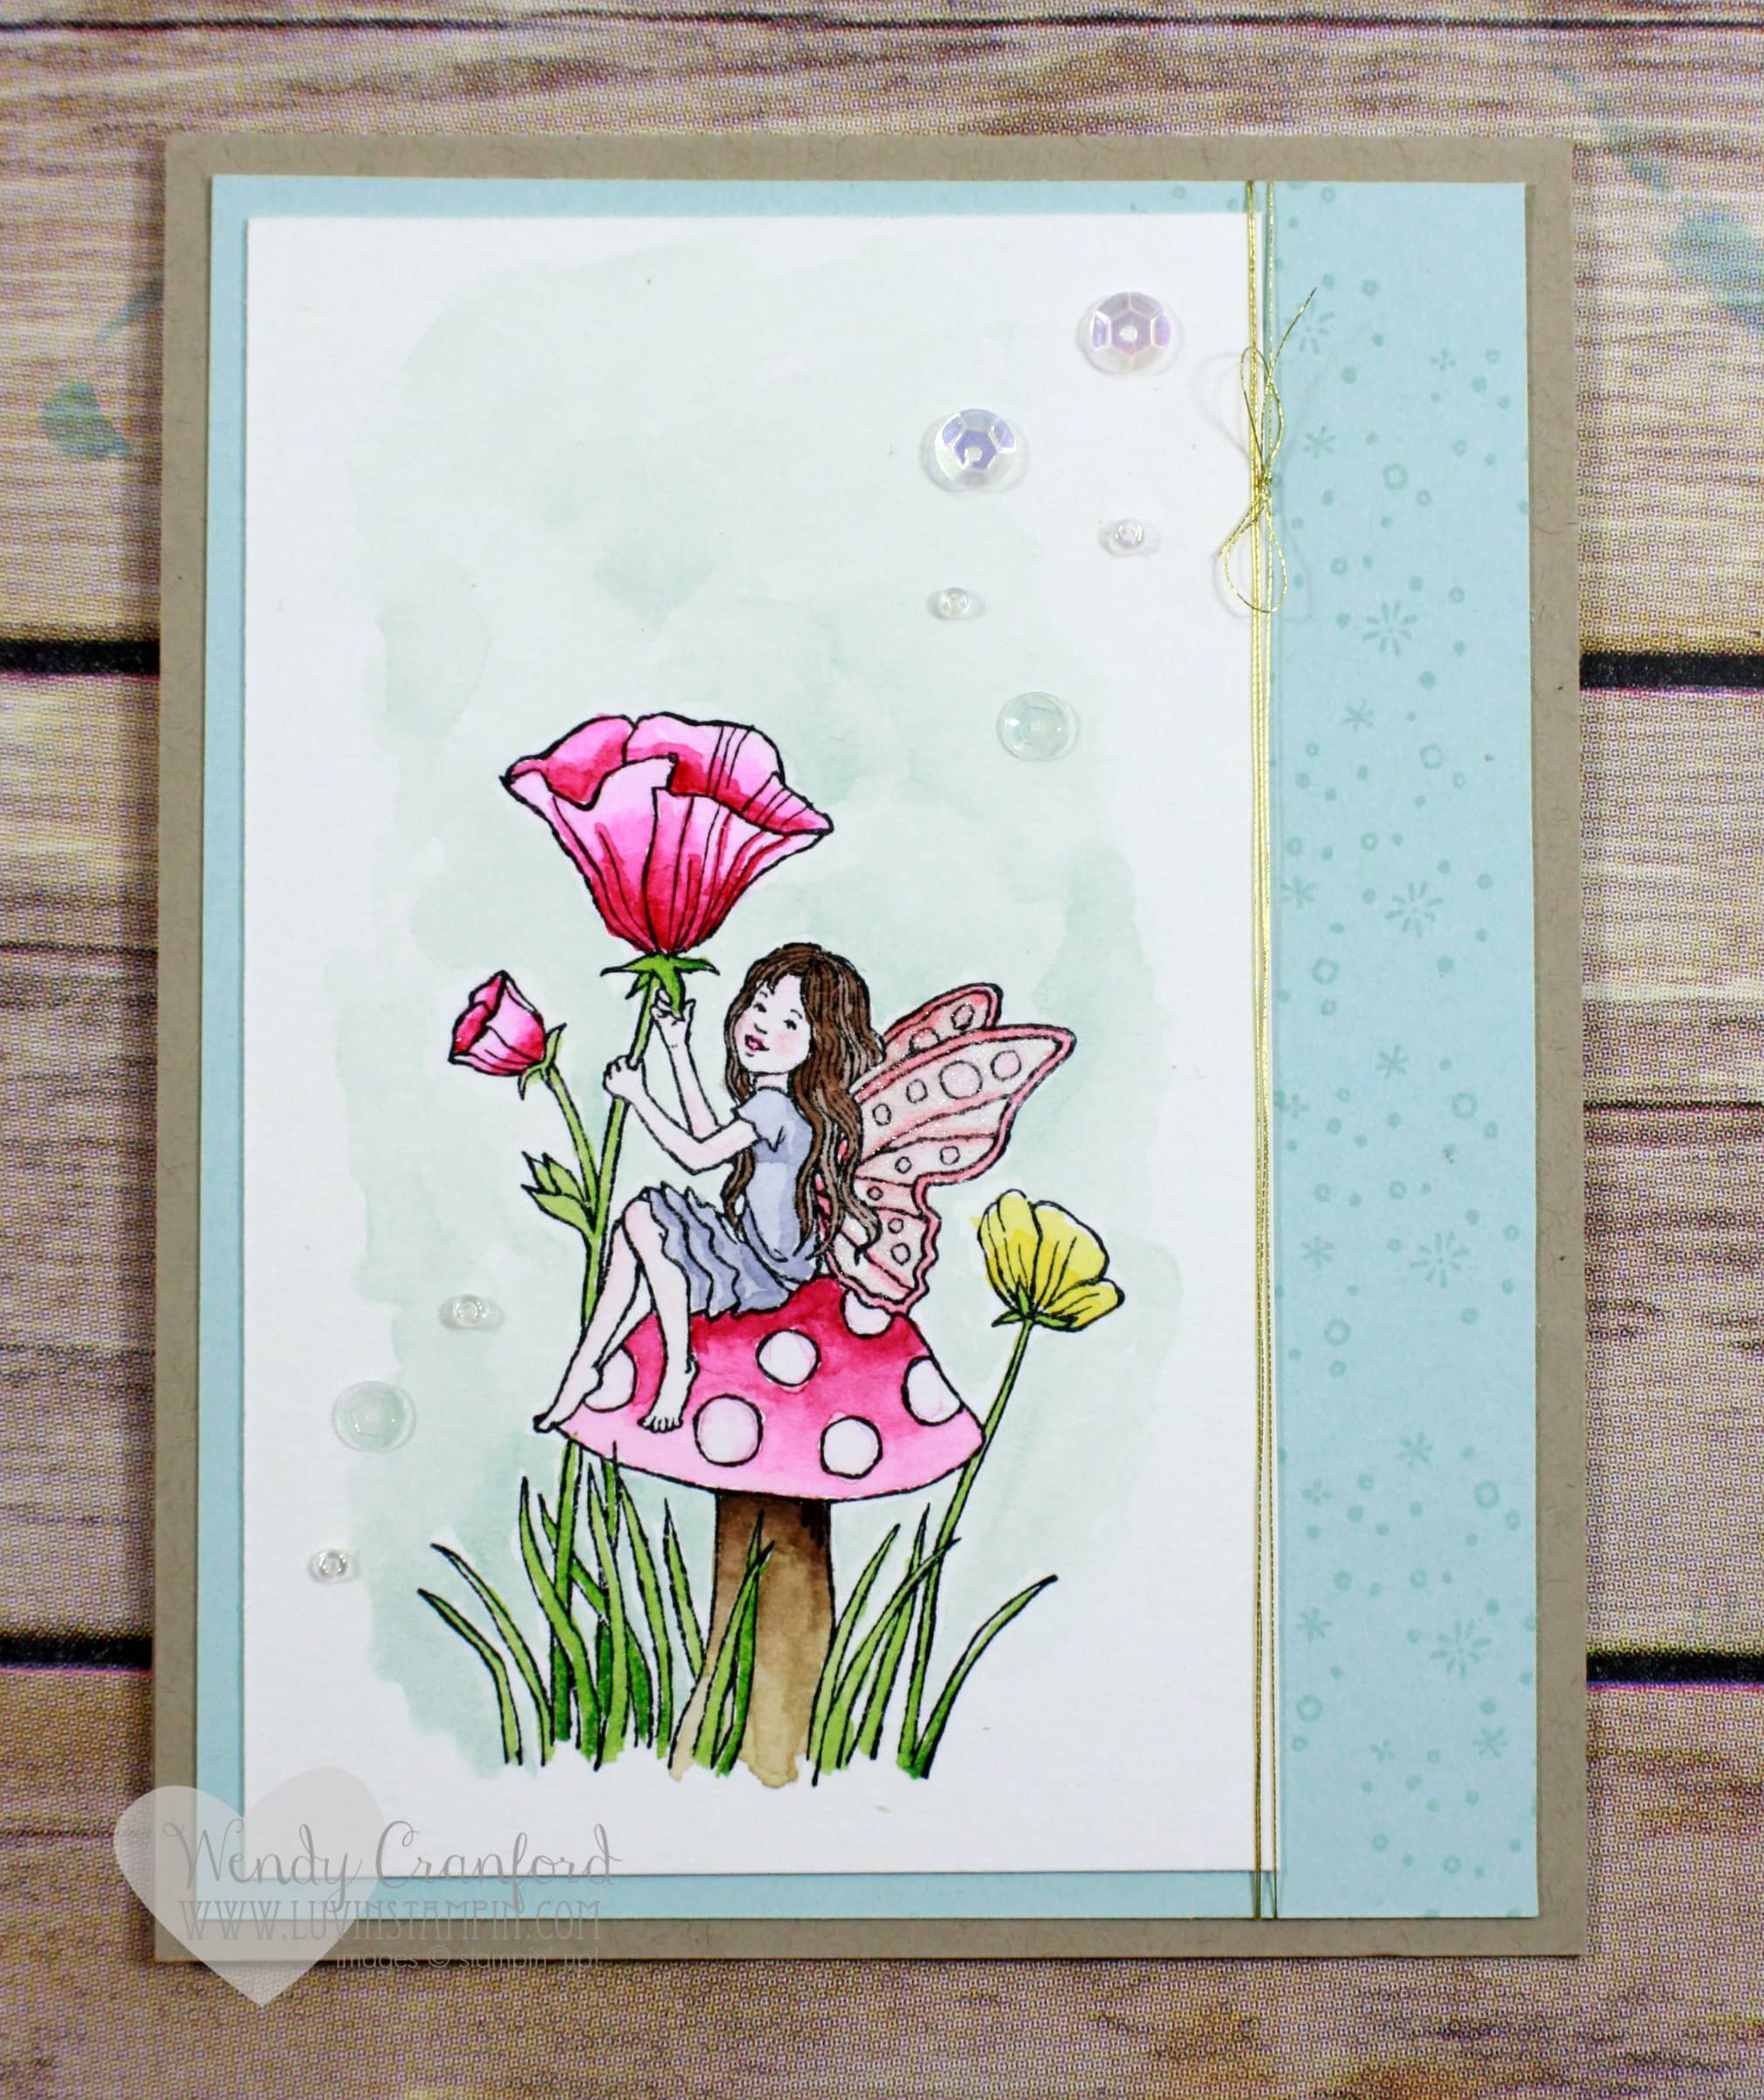 Fairy Celebration watercolor card #GDP040 Wendy Cranford luvinstampin.com